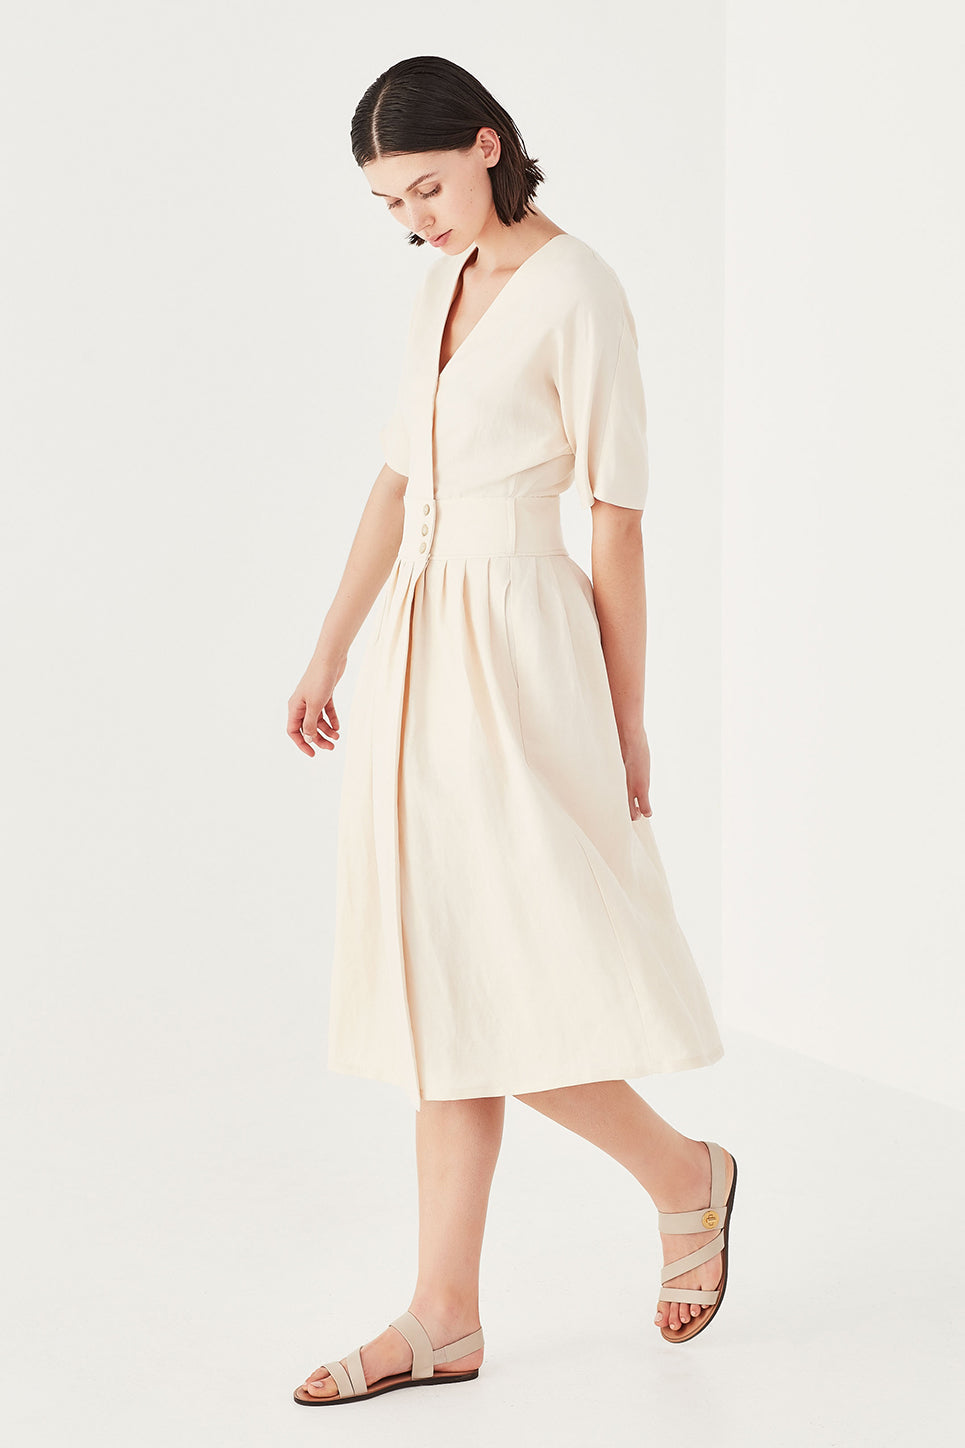 The Aster Dress in Cream